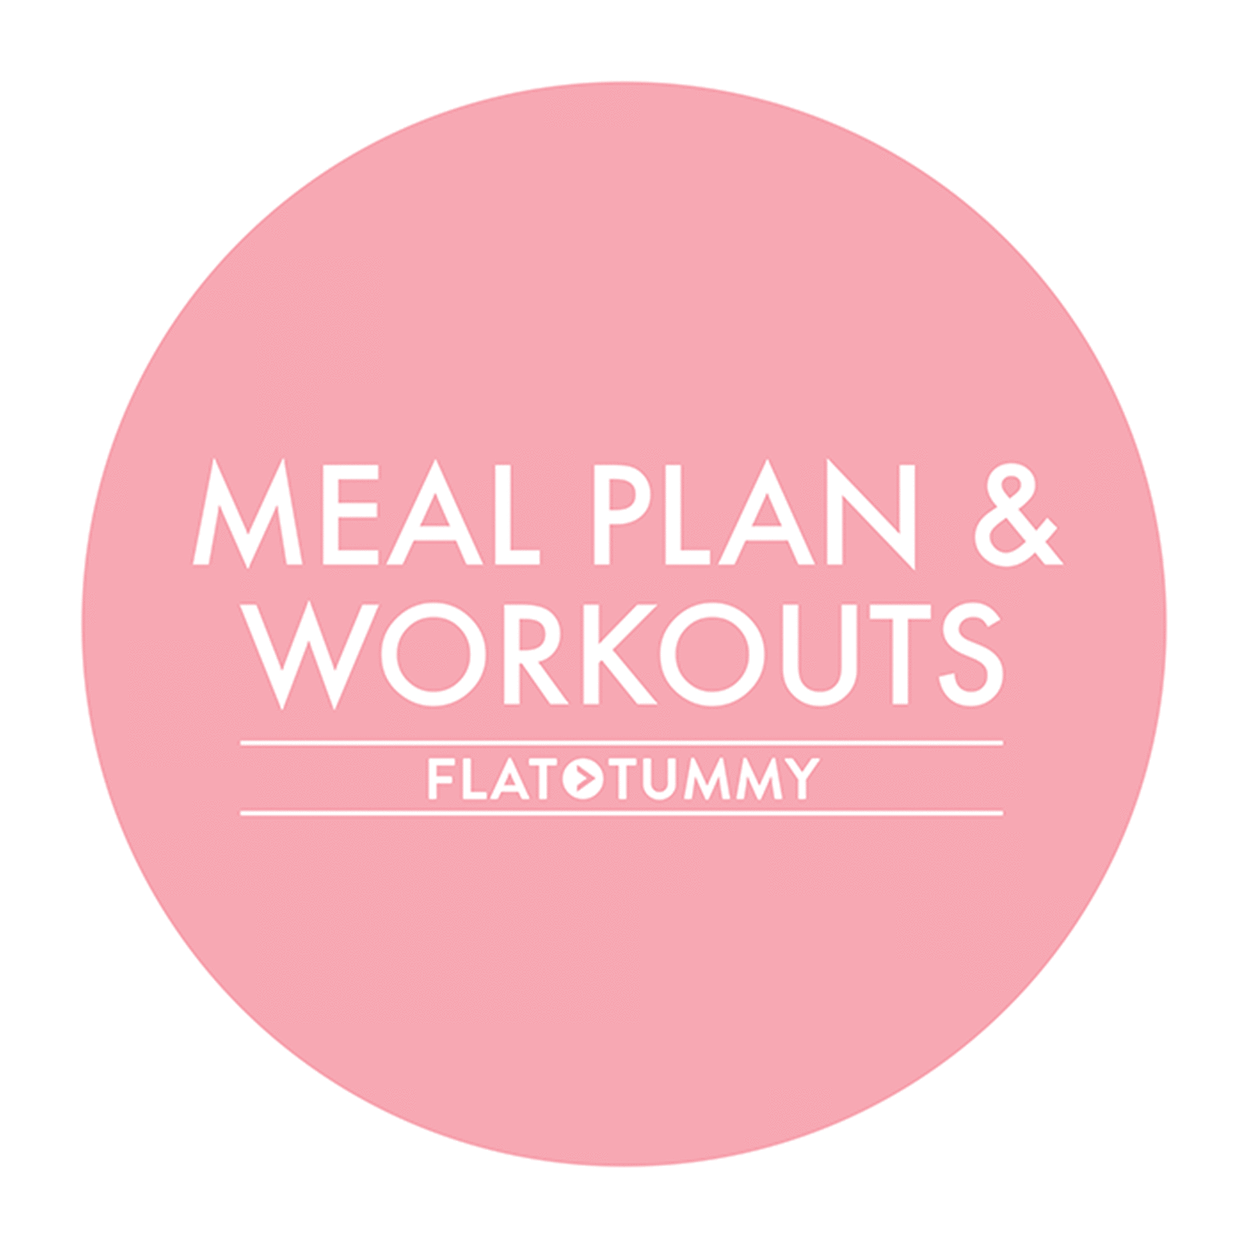 Flat Tummy Co Lifestyle 7 day meal & workout plan 7 Day Challenge: Meal Plan & Workouts